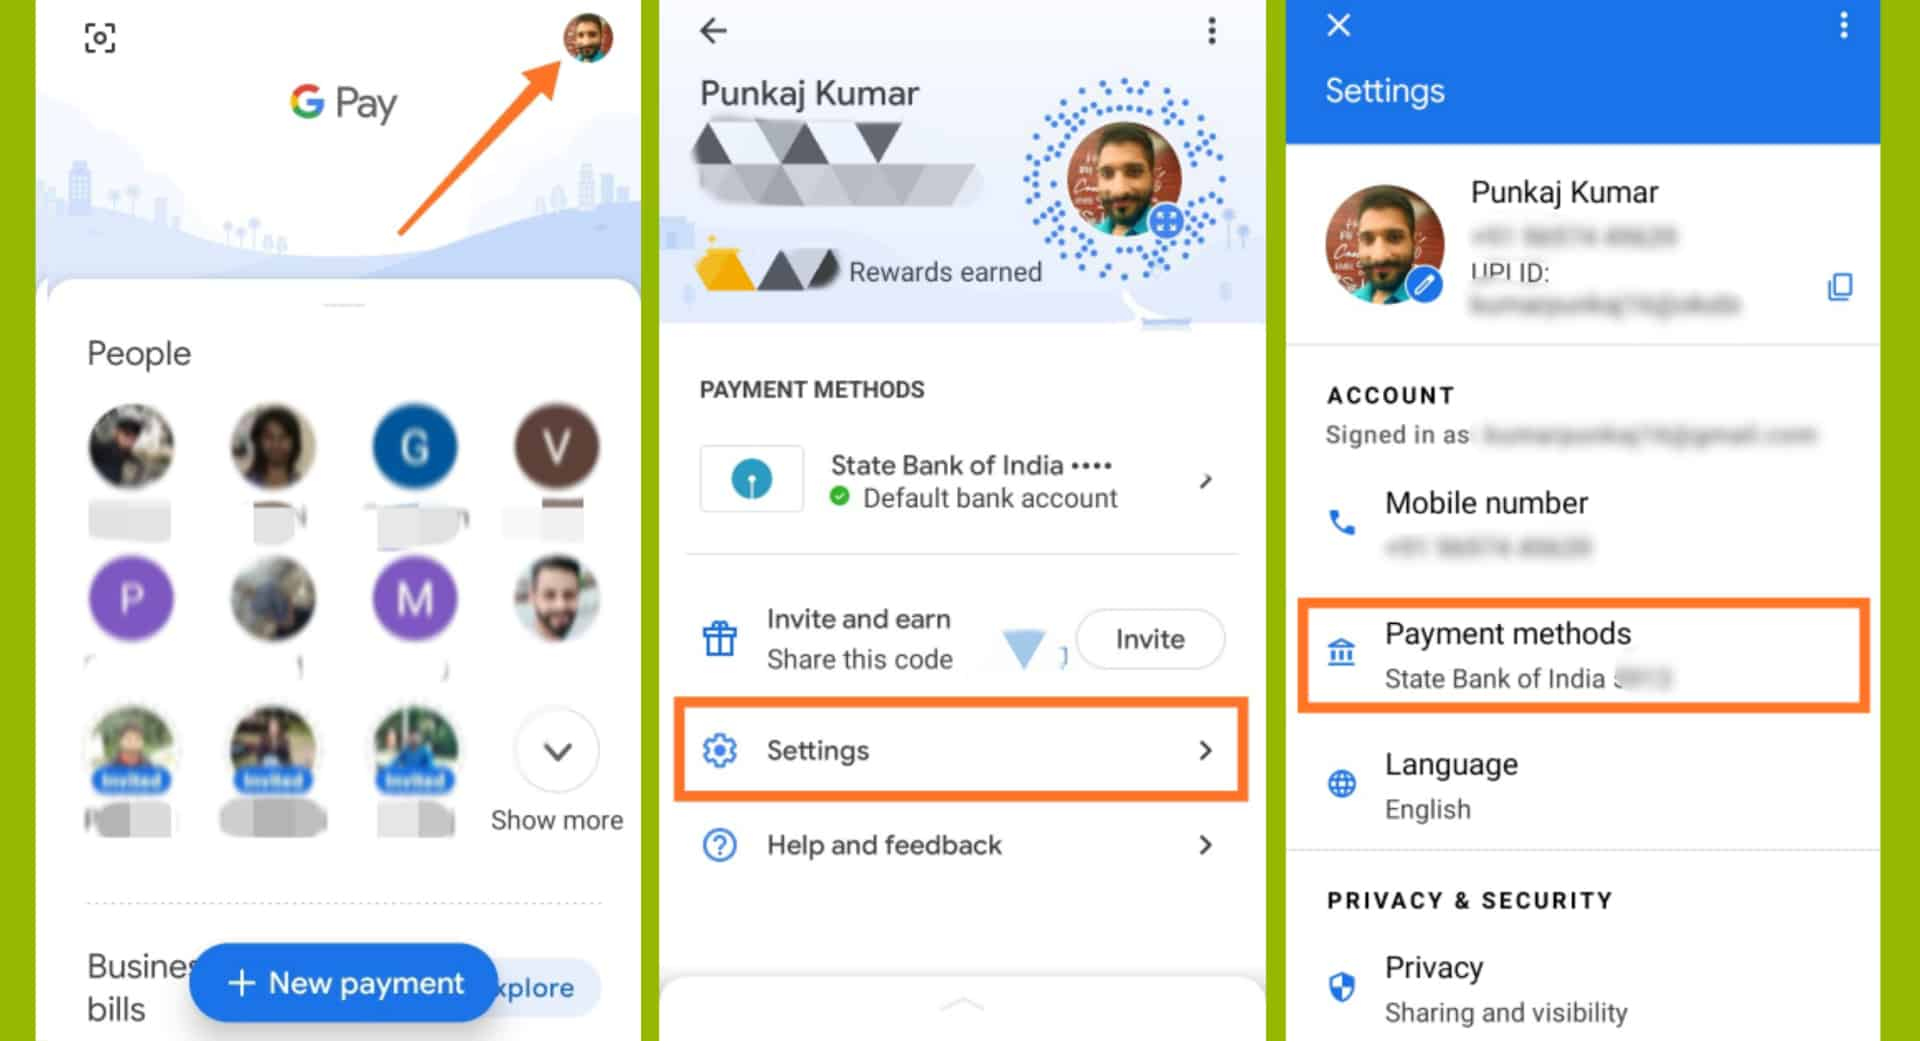 Google Pay Tests NFC-Based Card Payments in India, Rolls Out to Wider Audience